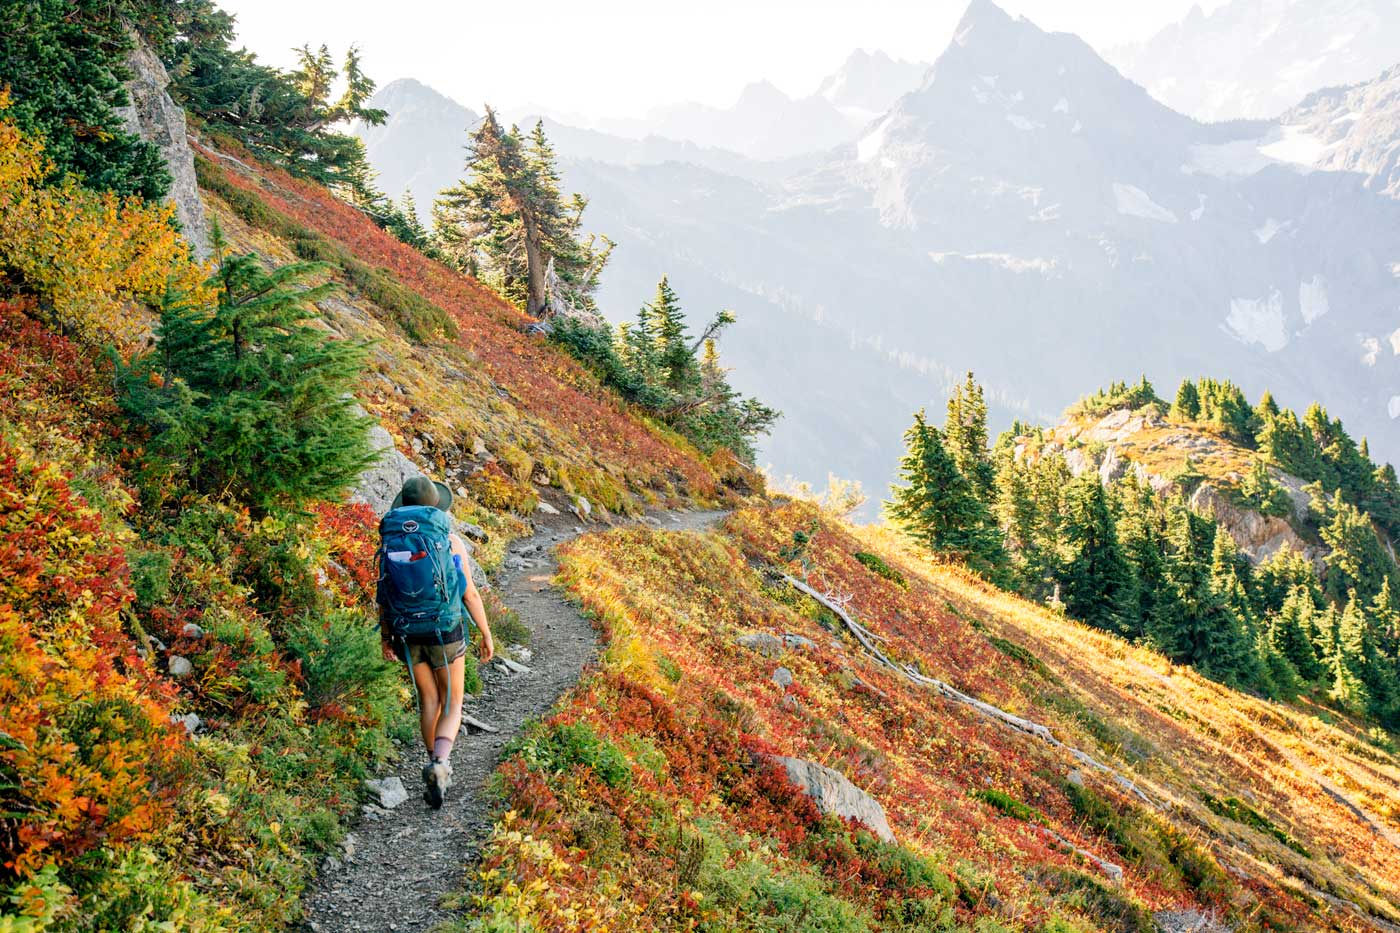 Woman hiking in the Cascade Mountains with fall foliage